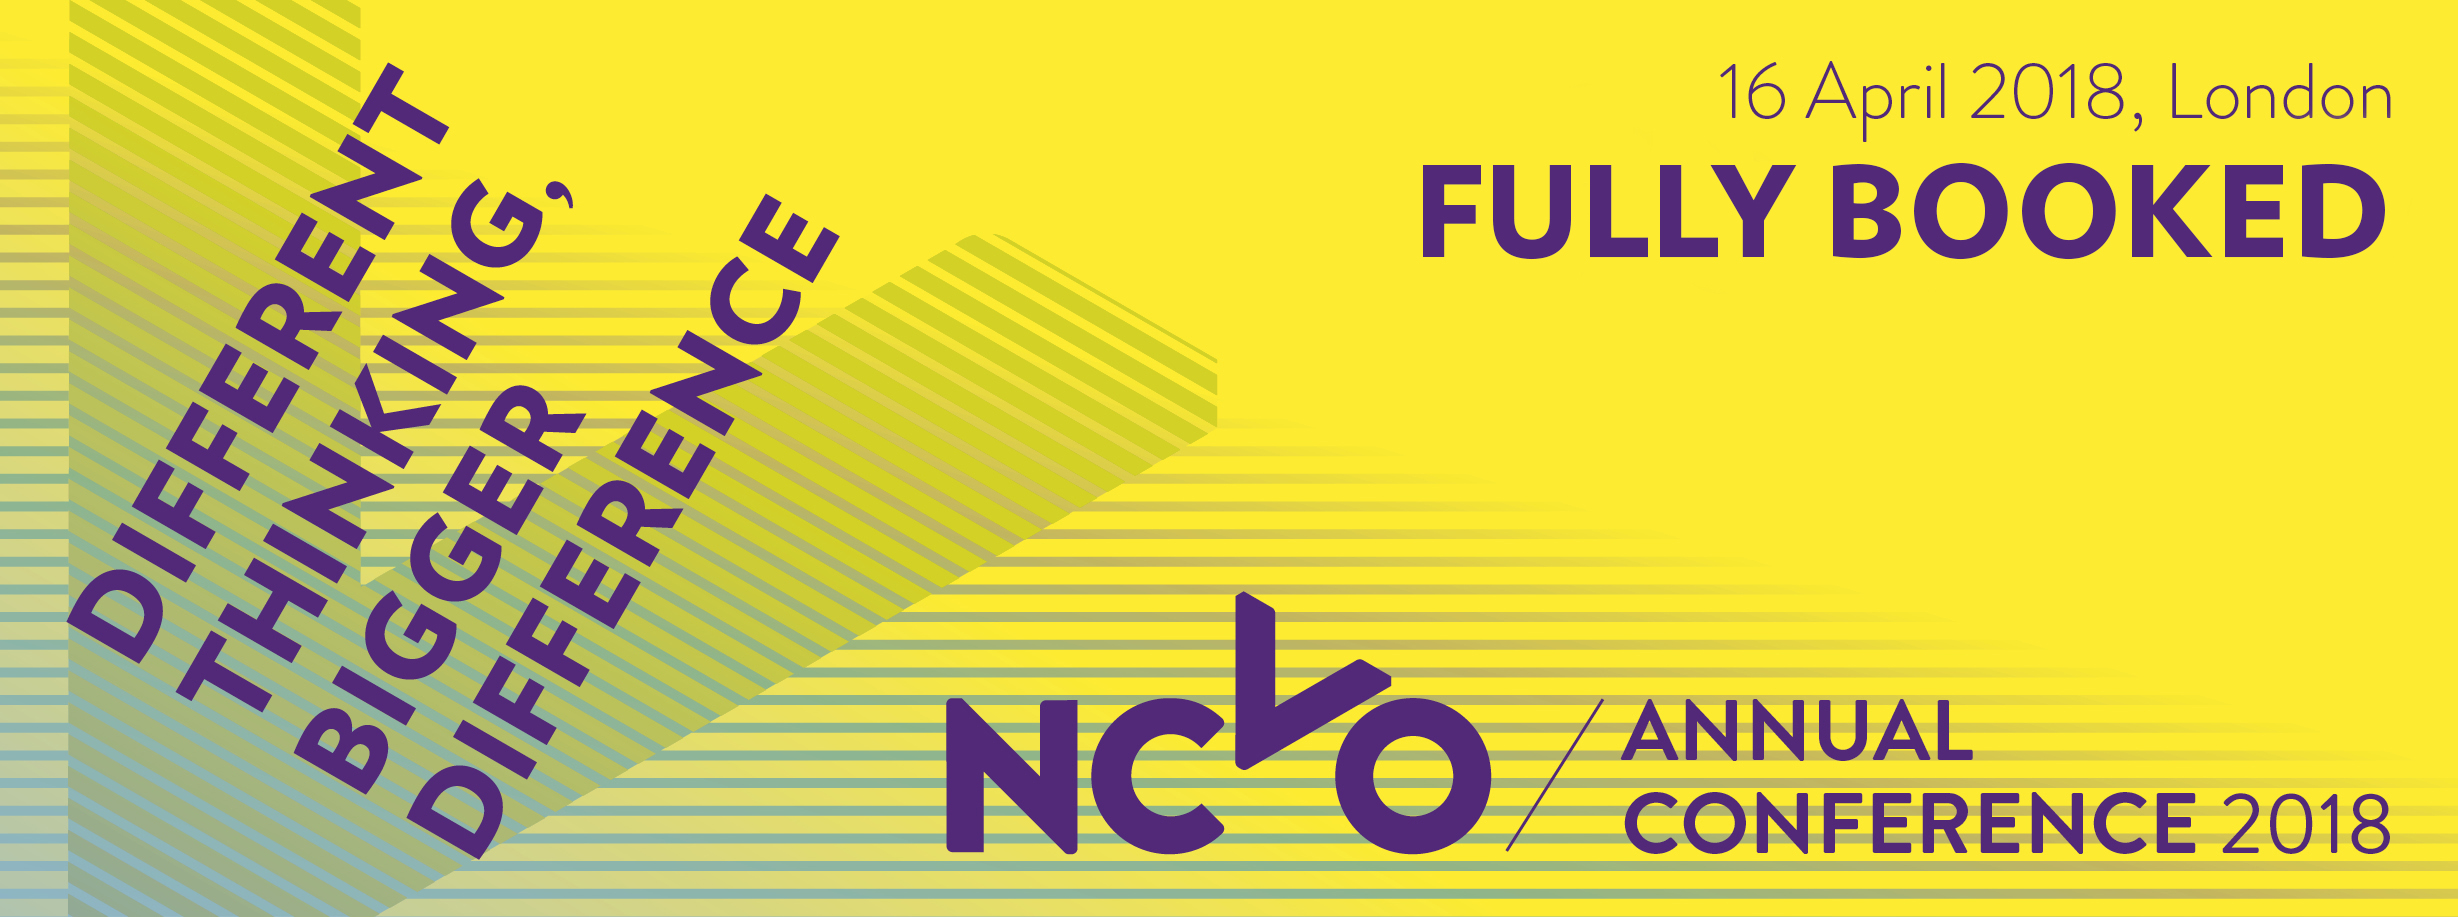 NCVO annual conference 2018 banner. 16 April: book now. Different thinking, bigger difference